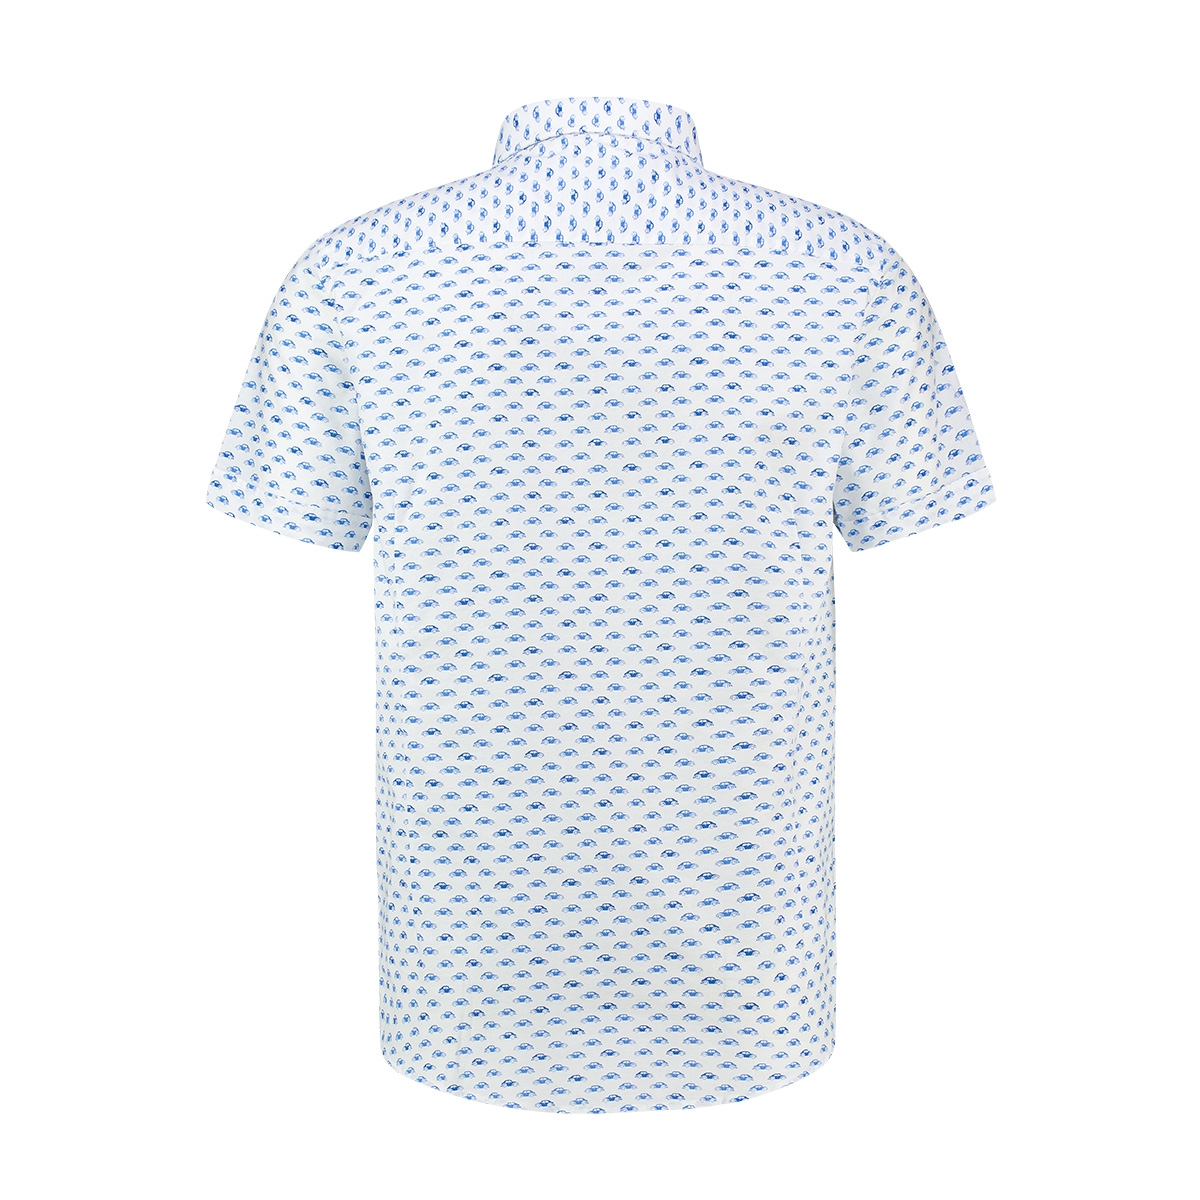 shirt aop stretch ss mc13 0105 03 haze & finn overhemd beetle